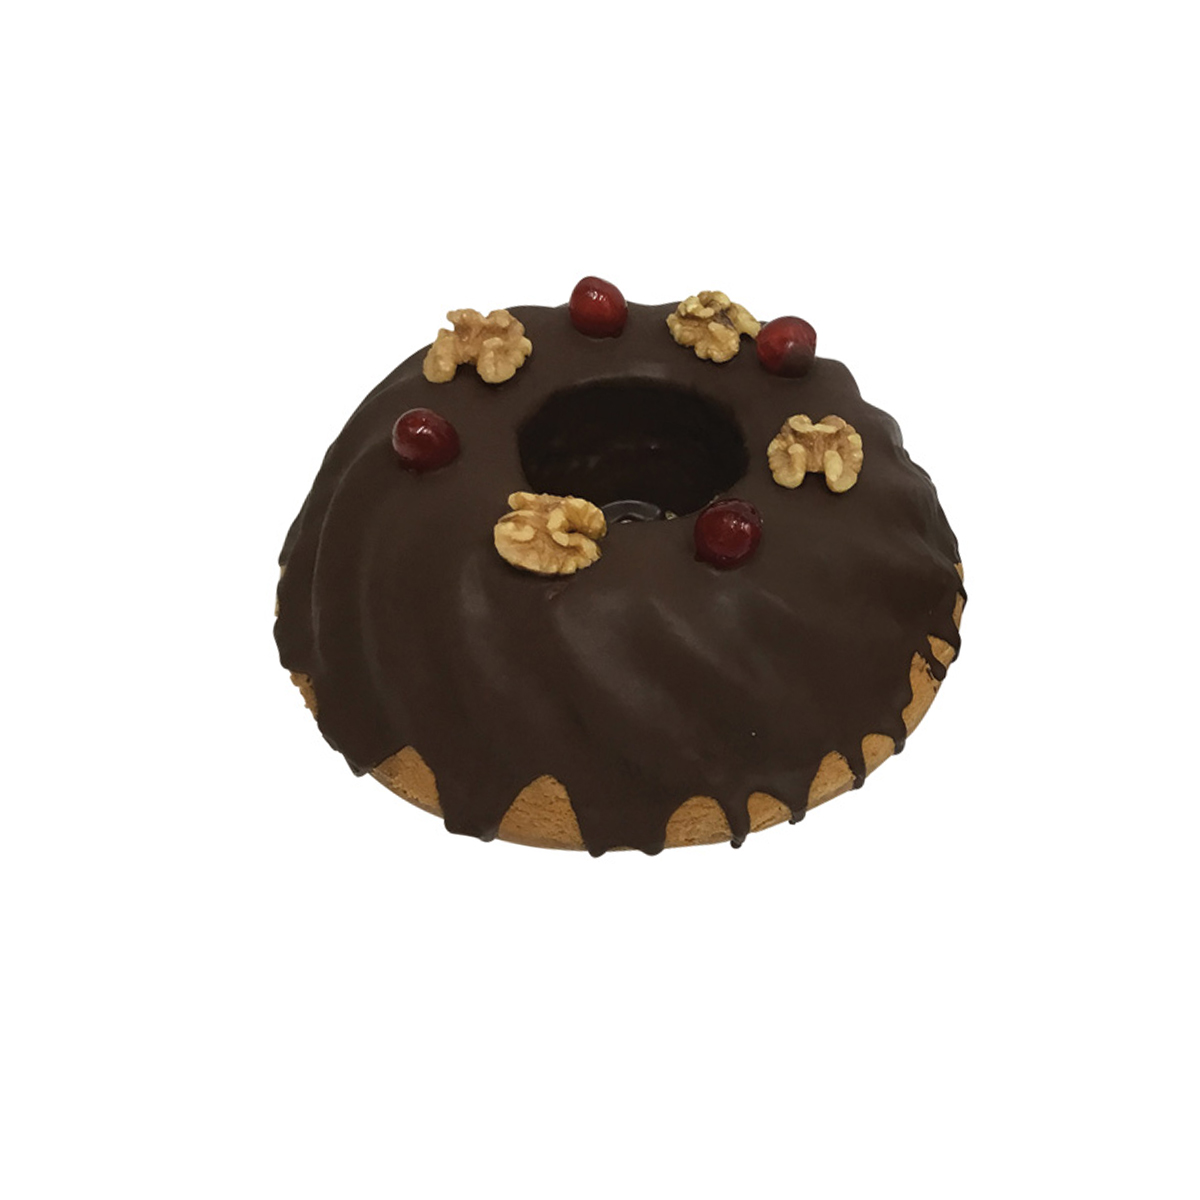 Chocolate Coated Gugolof Cake